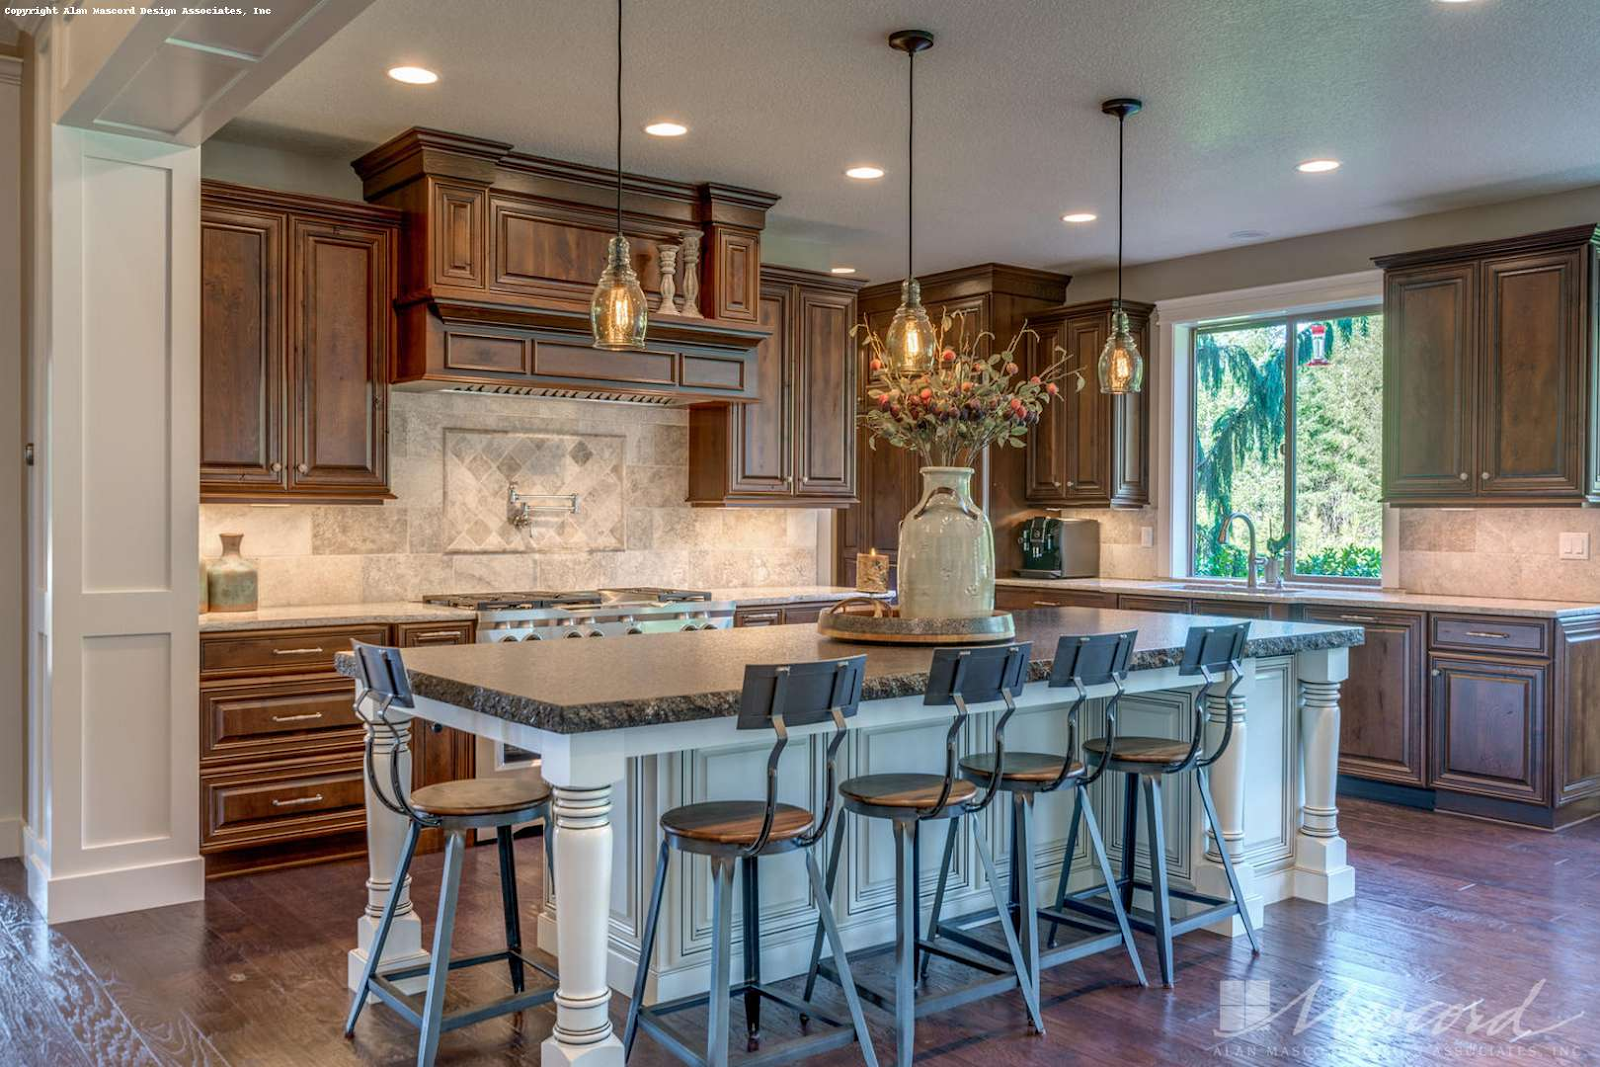 antique brown kitchen cabinets with an antique white island, pendant lighting and tile backsplash